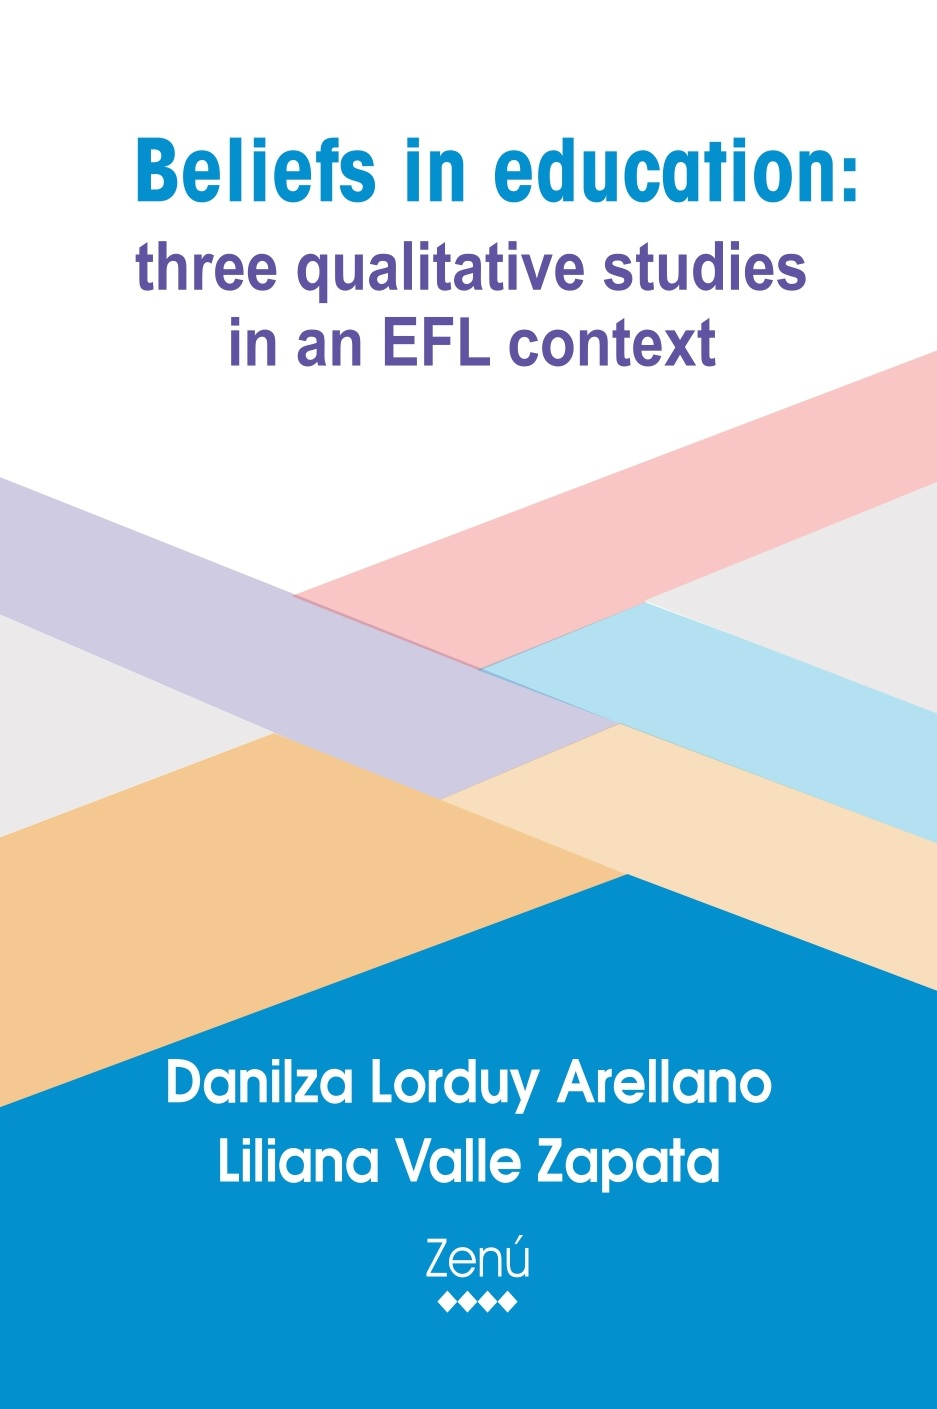 Beliefs in education: three qualitative studies in an EFL context